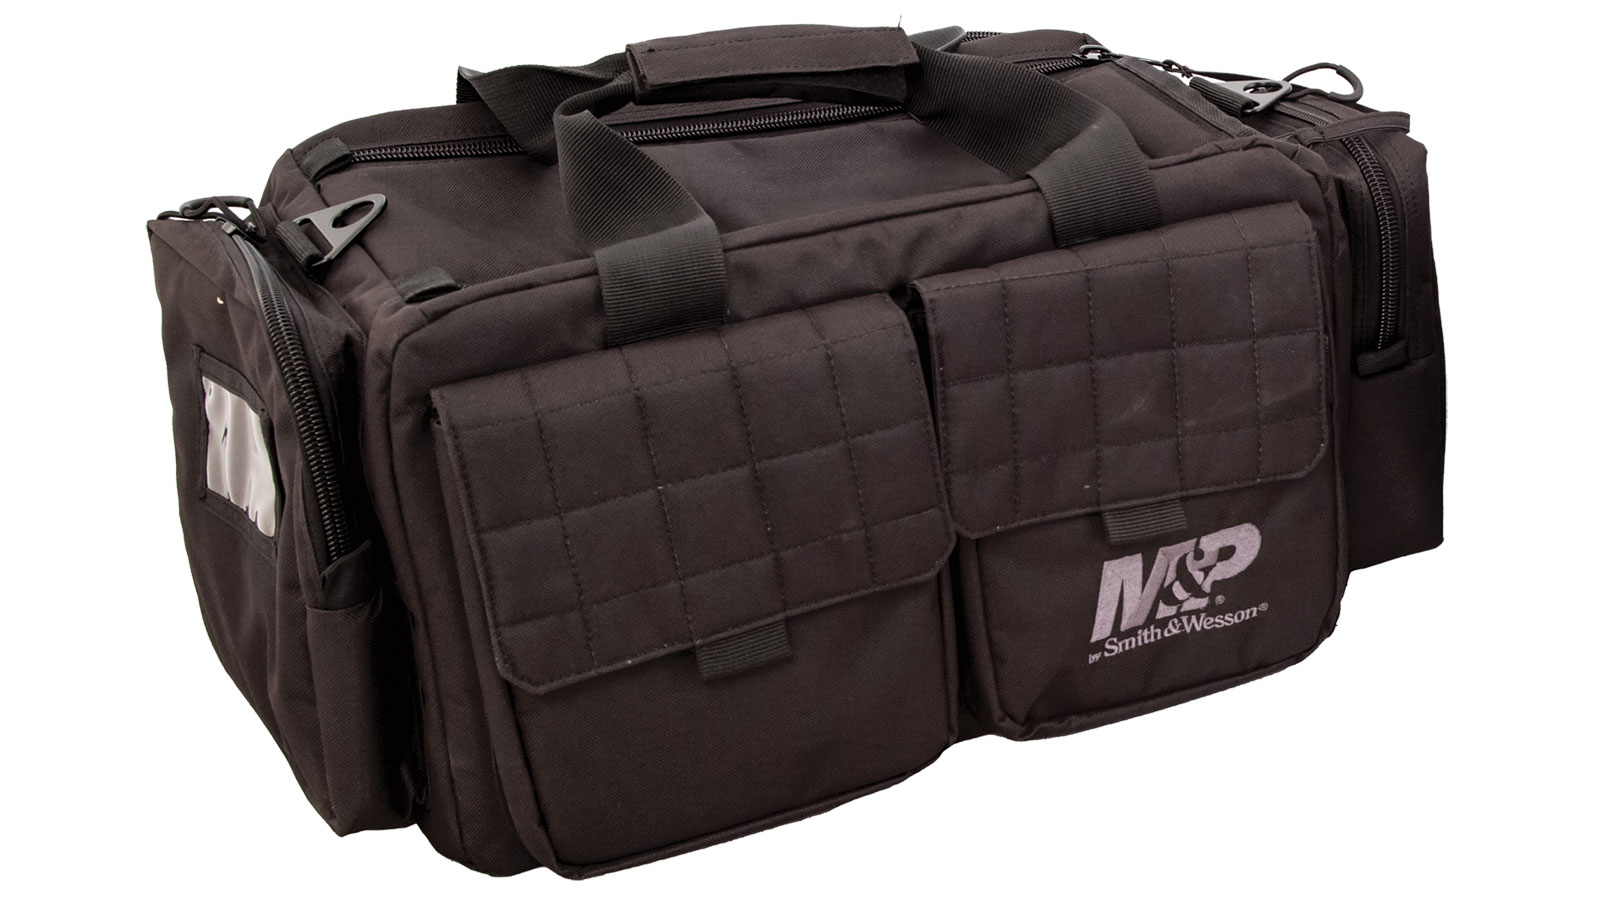 M&P Accessories 110023 Officer Tactical Range Bag Nylon 22 x 14 in.  x 10.5 in.  Exterior Black in.